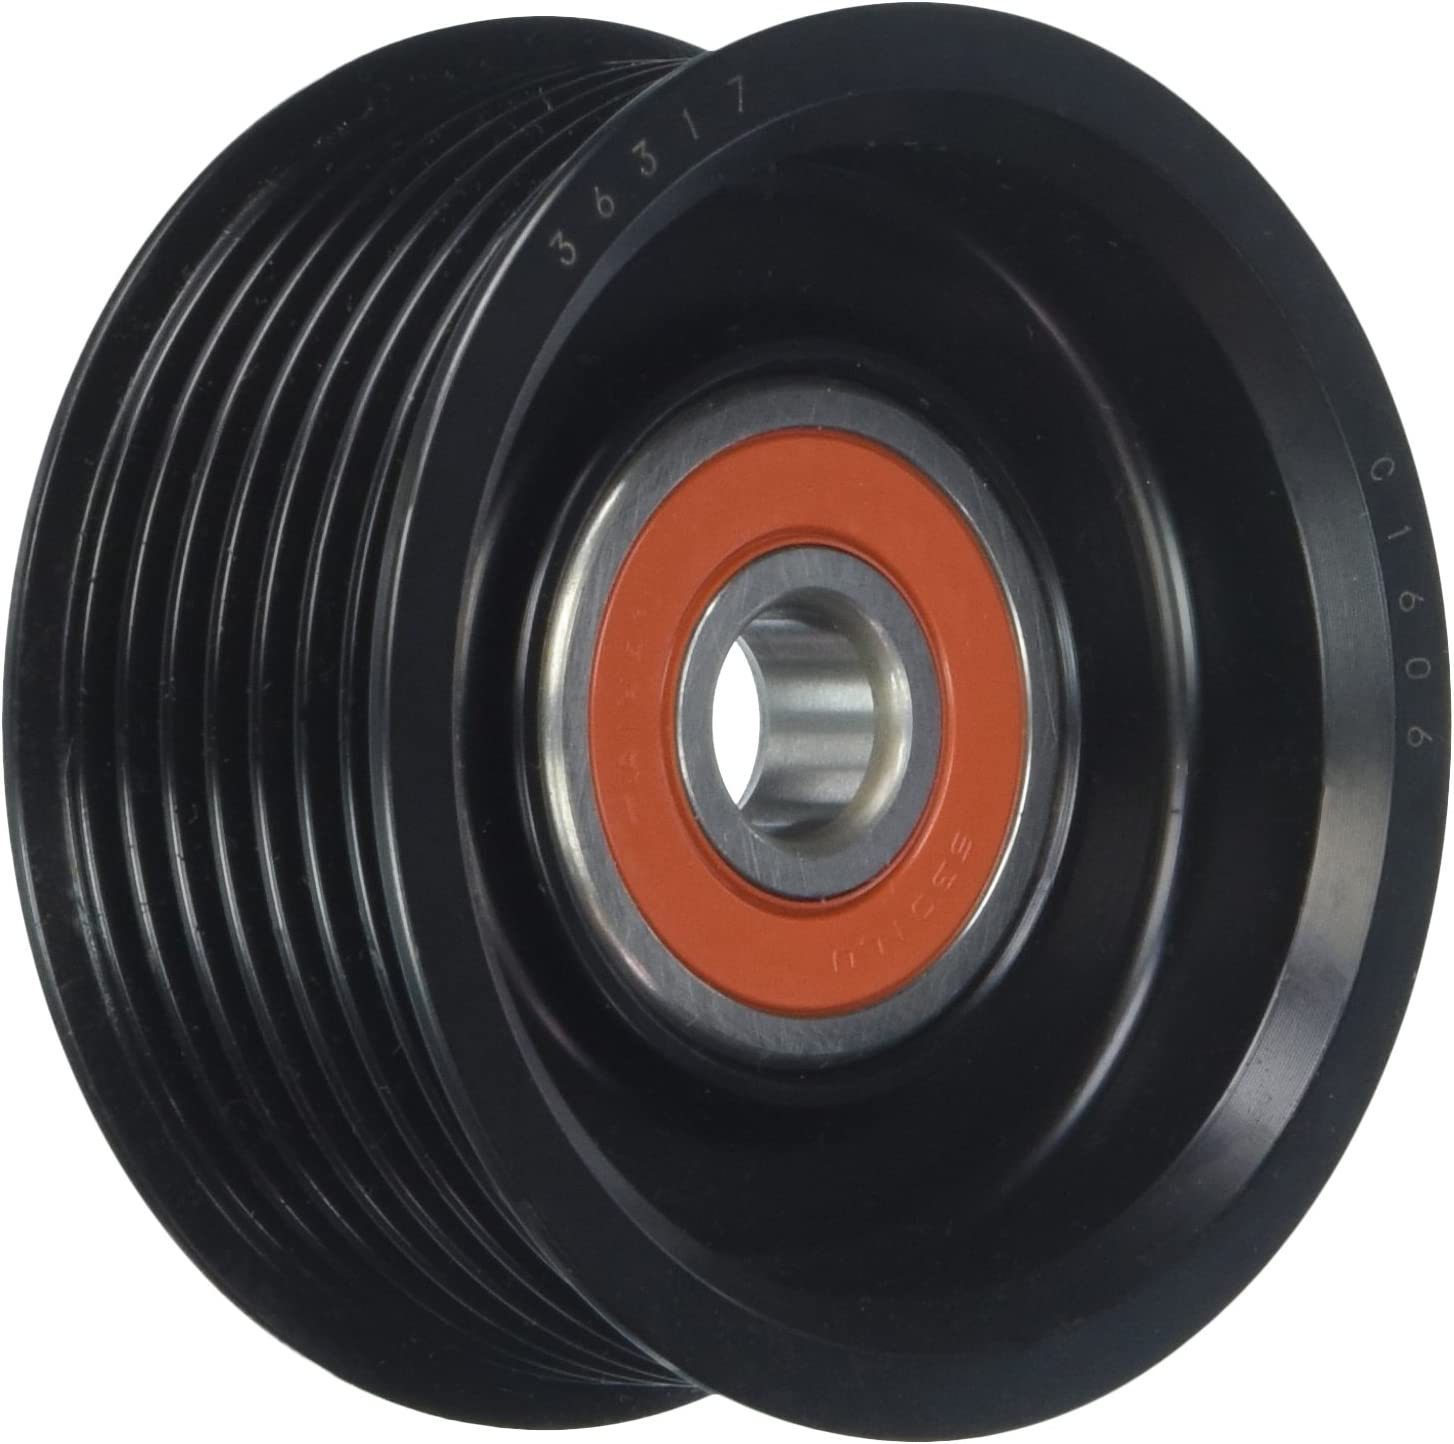 New Idler Pulley   Gates   36222